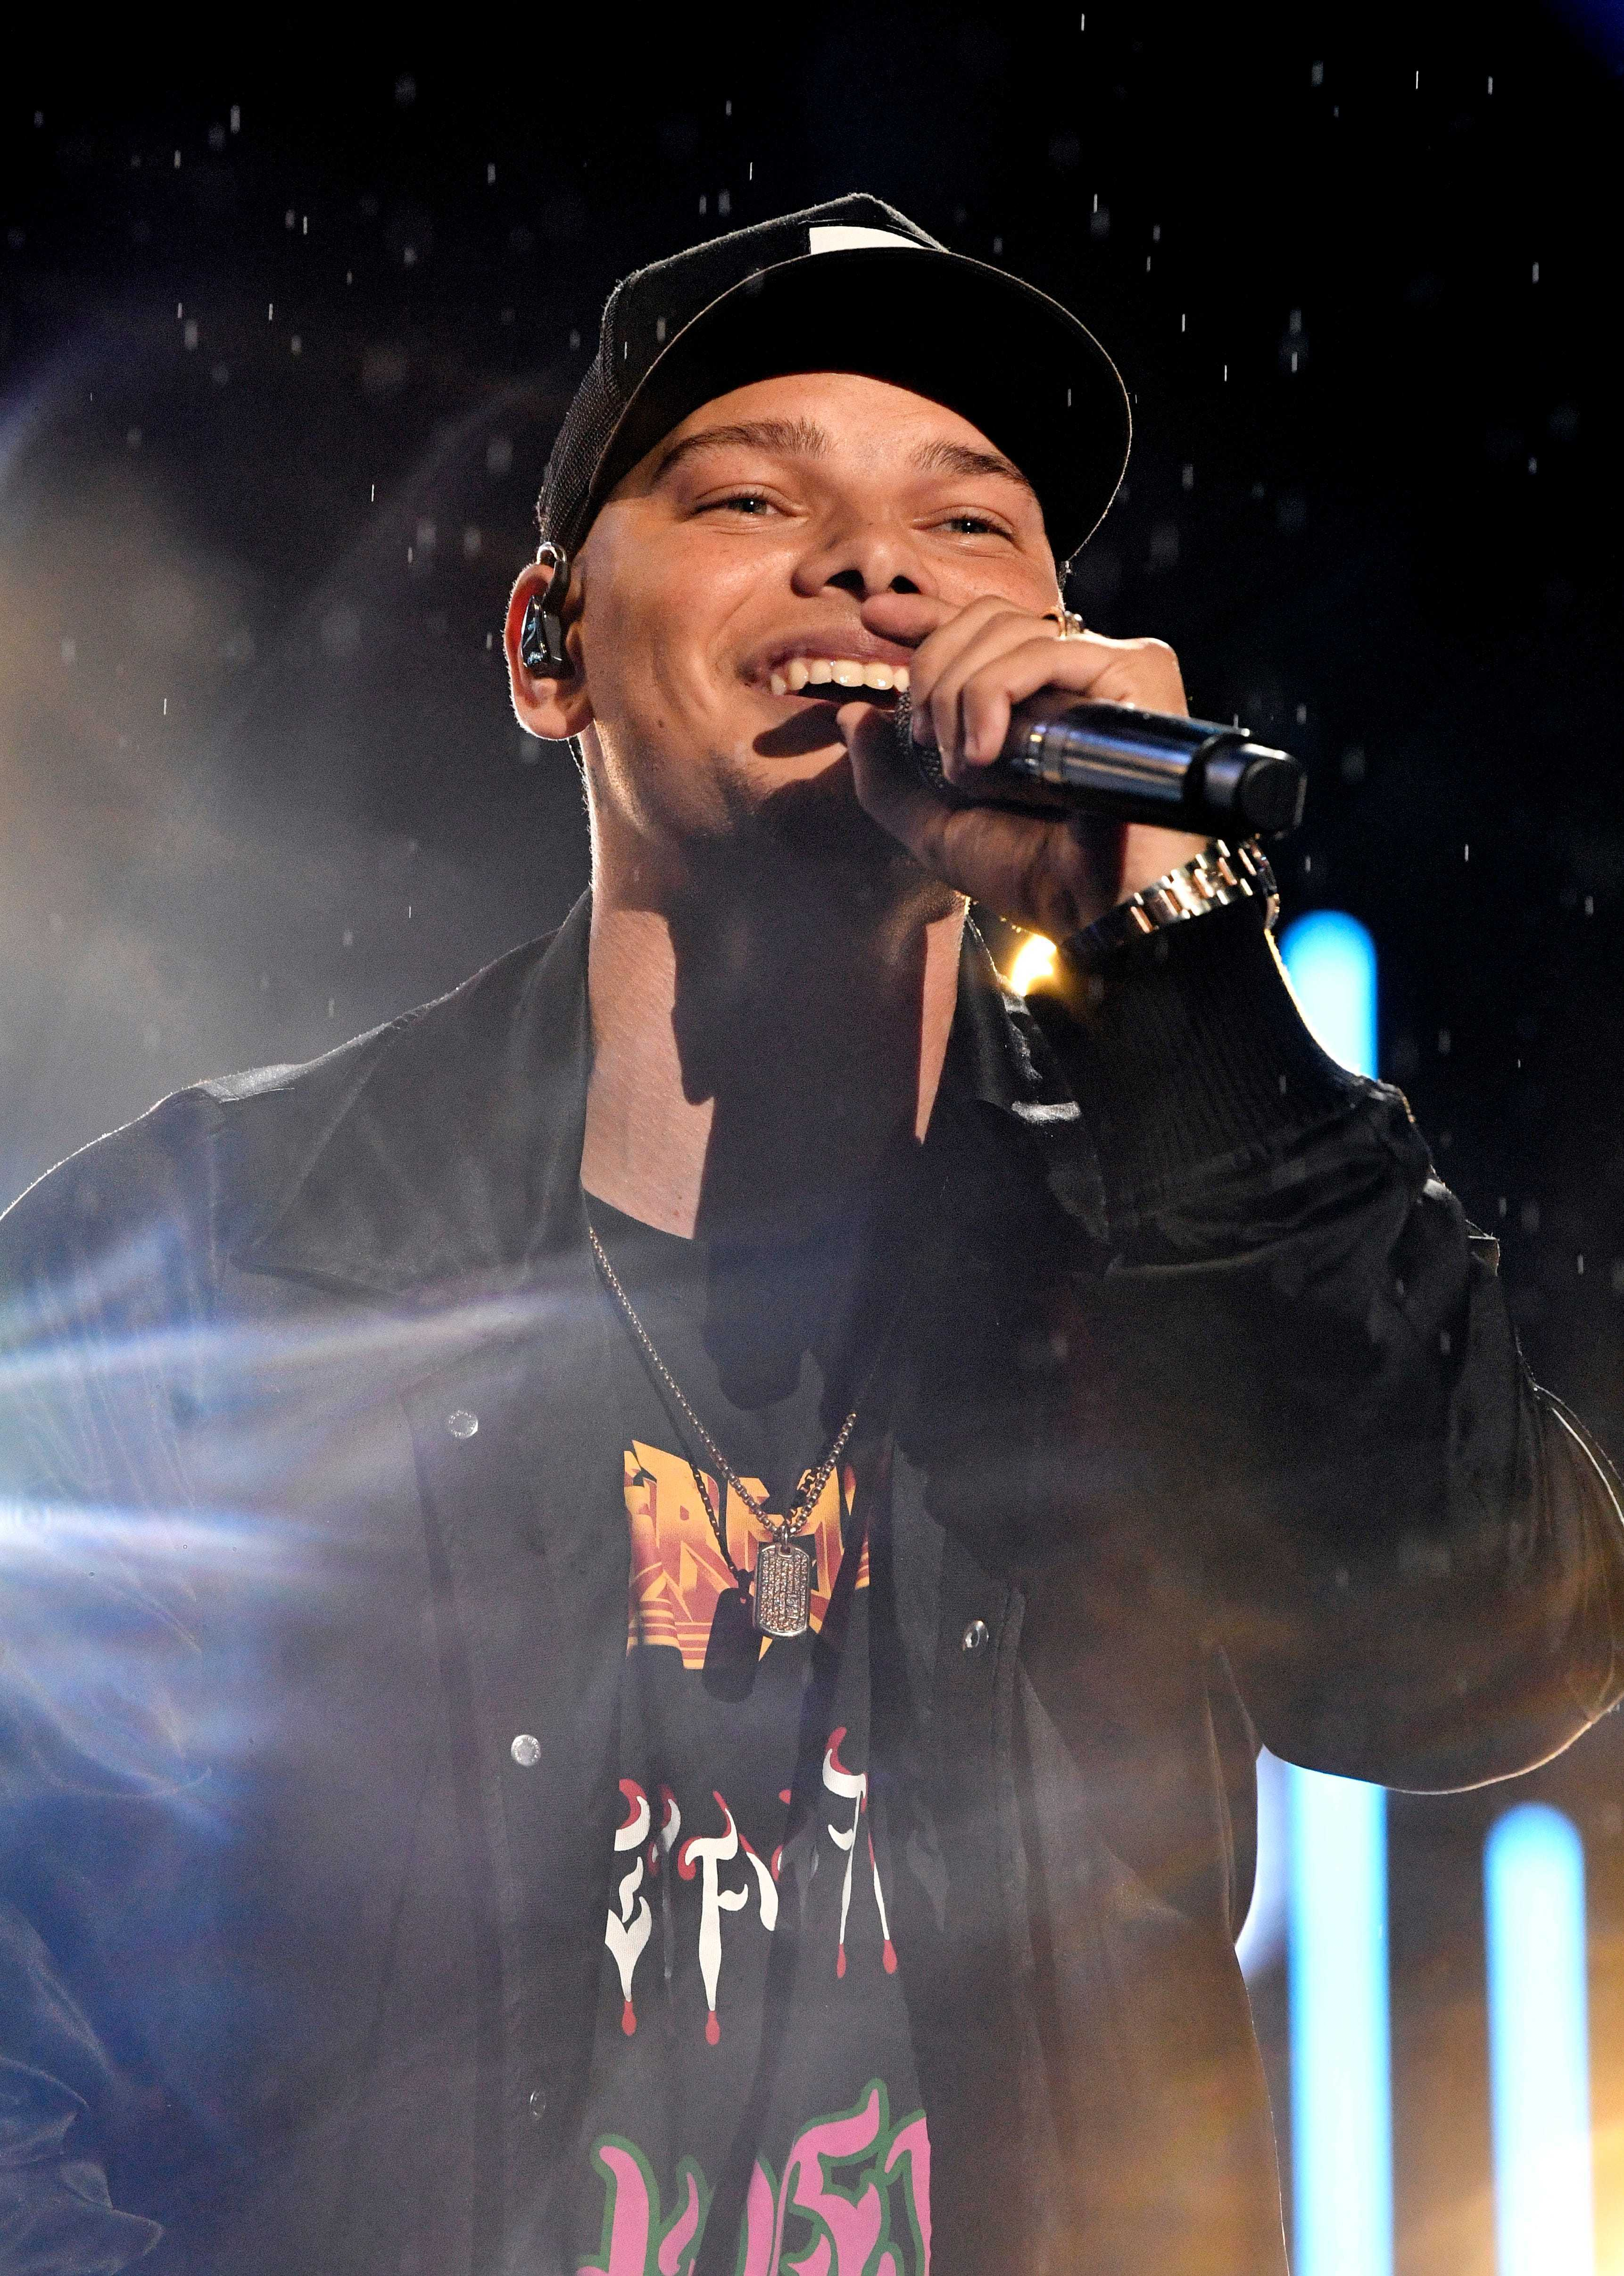 Kane Brown has had six No. 1 hits at country radio, and his first two albums have gone double platinum and platinum, respectively.